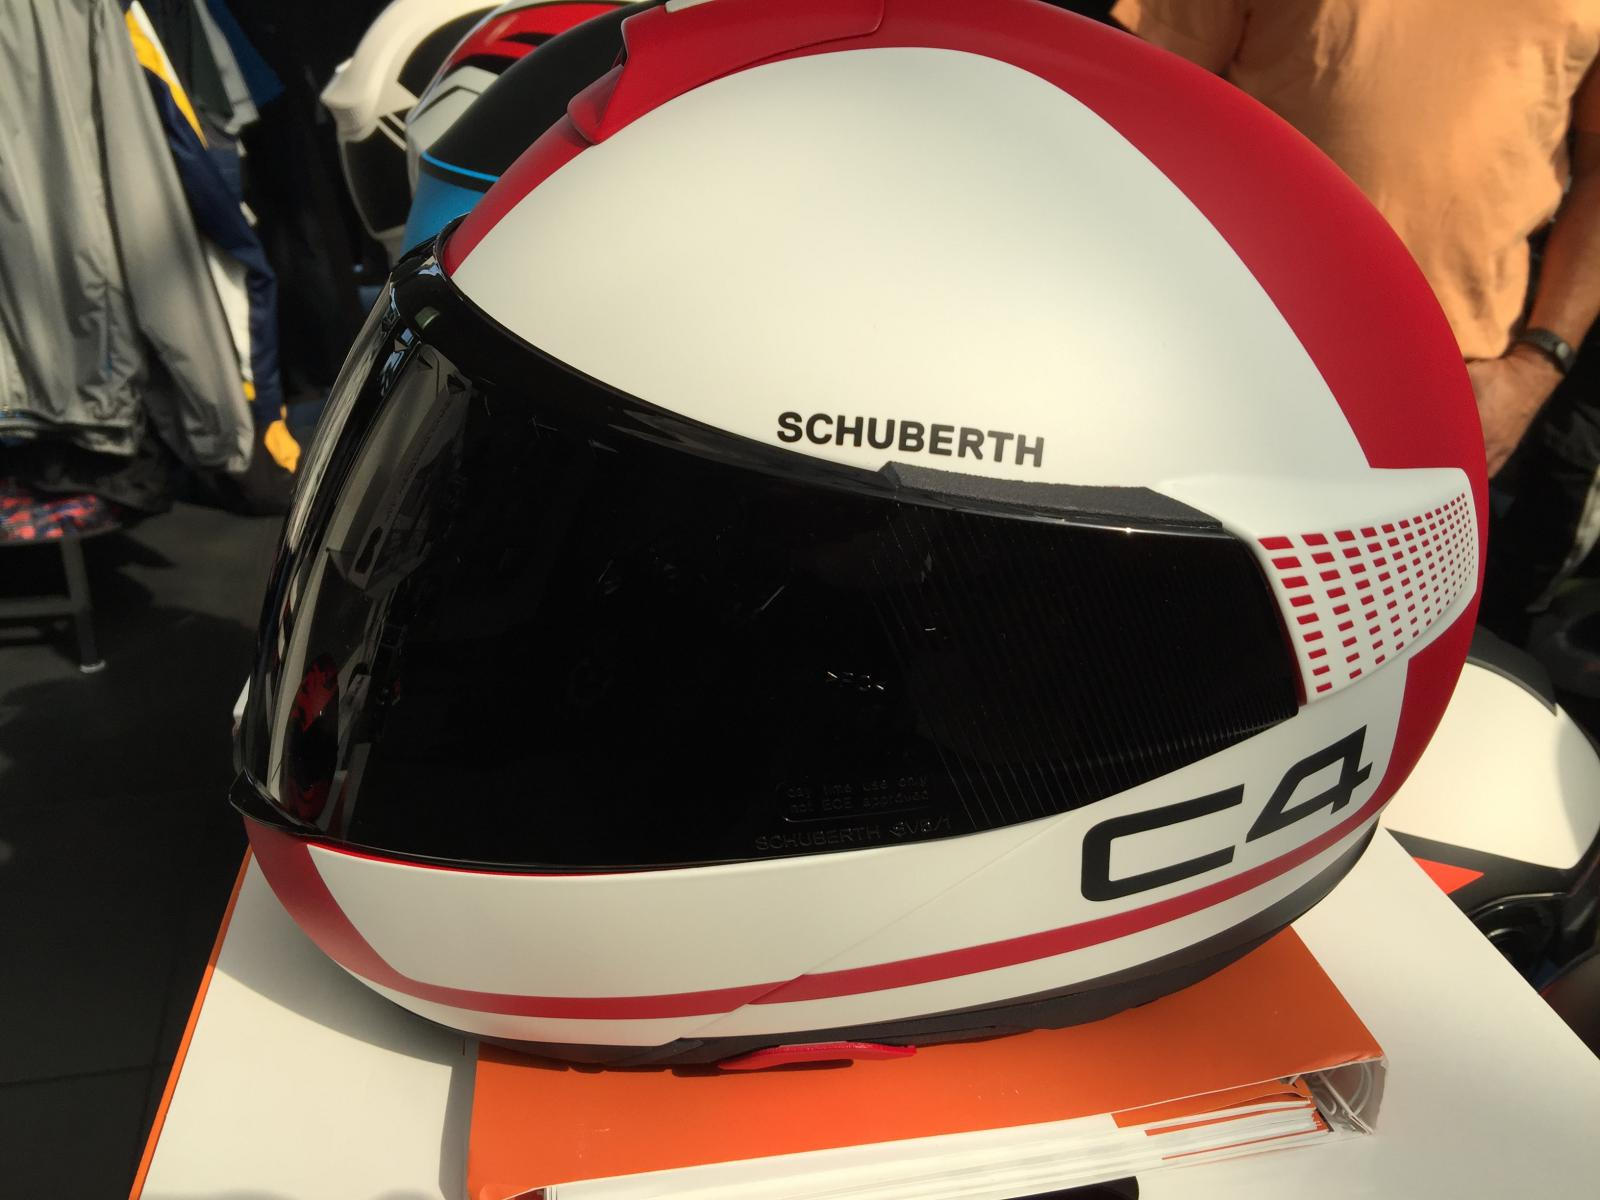 BMW Silver Spring >> Schuberth C4 Pro Spring 2017 - Page 2 - BMW K1600 Forum : BMW K1600 GT and GTL Forums